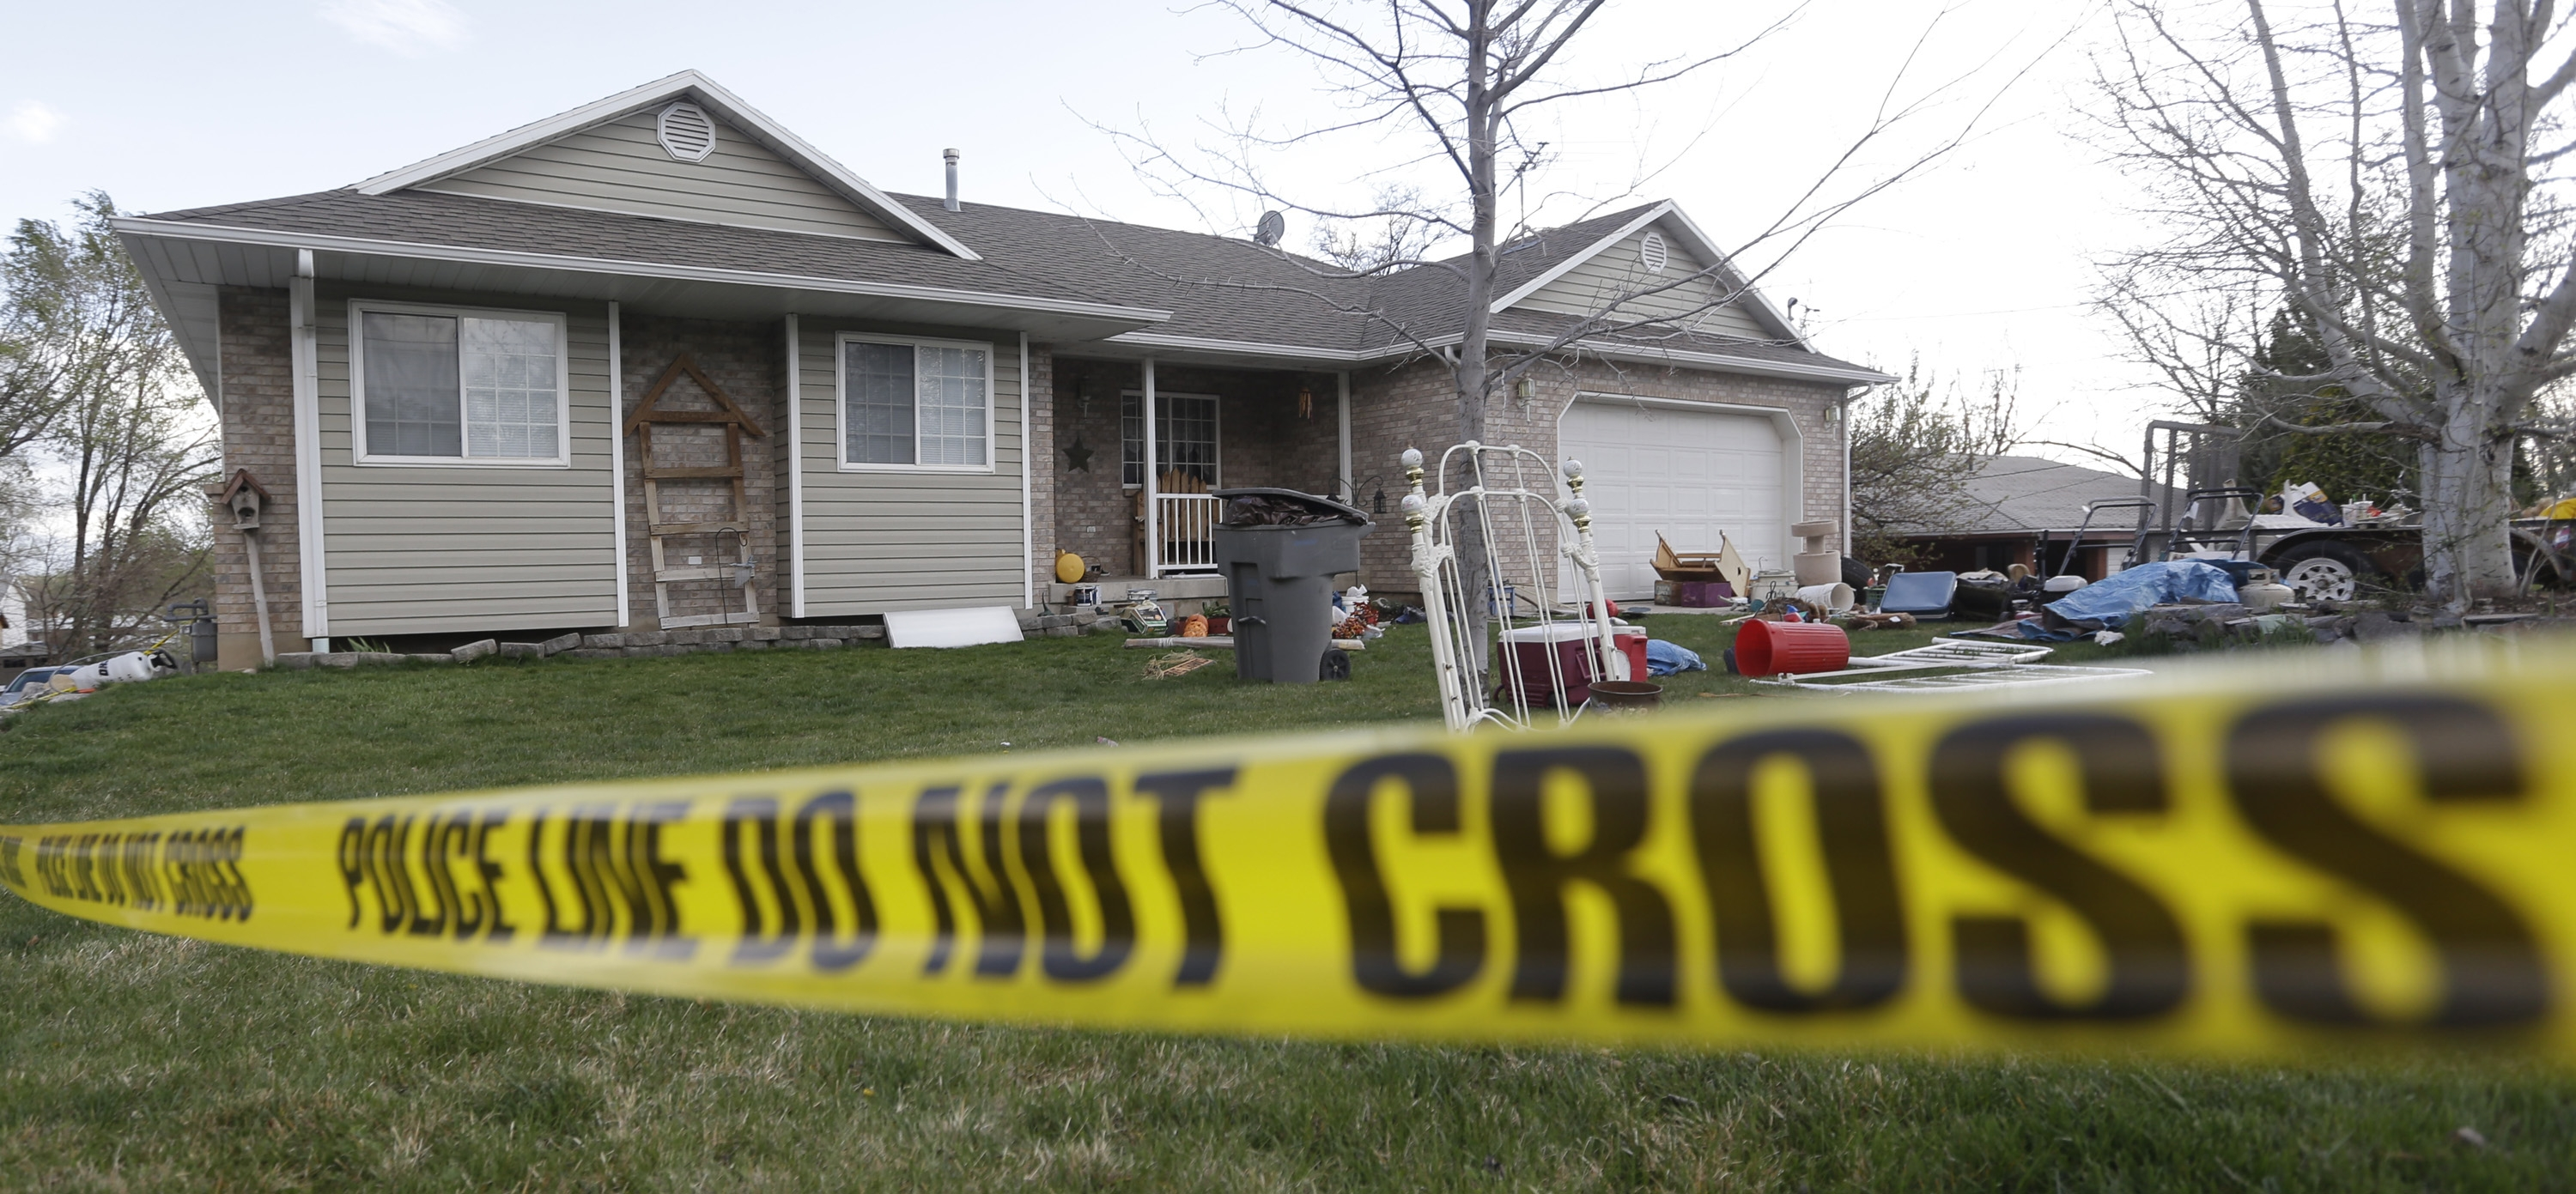 Police tape surrounds the Utah home of Megan Huntsman, who admitted to killing six of her infant children and hiding their bodies